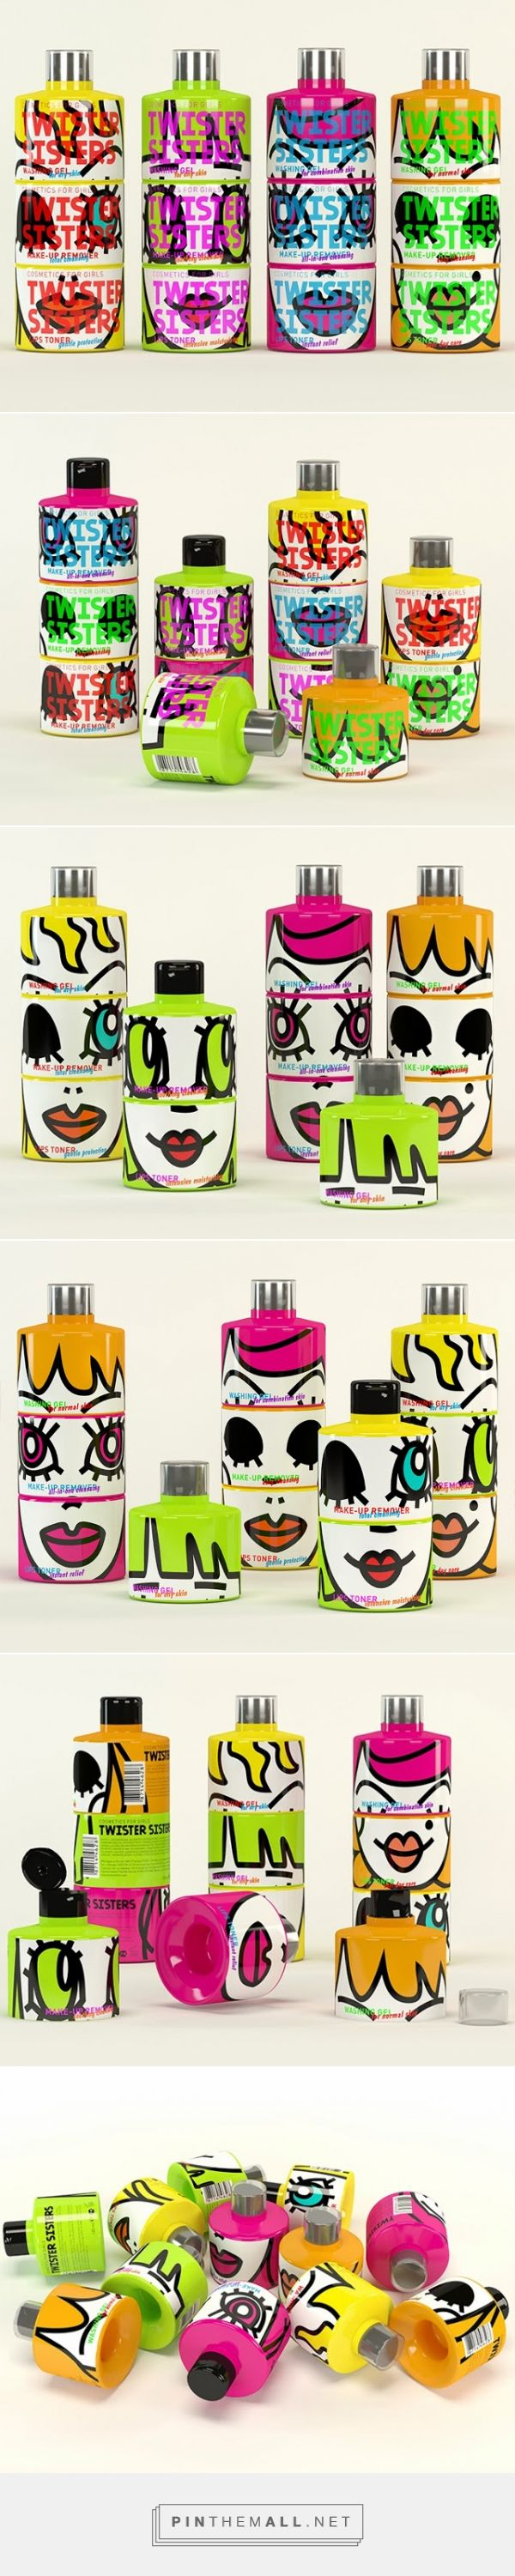 Twister Sisters for girls /  teens' skin care.